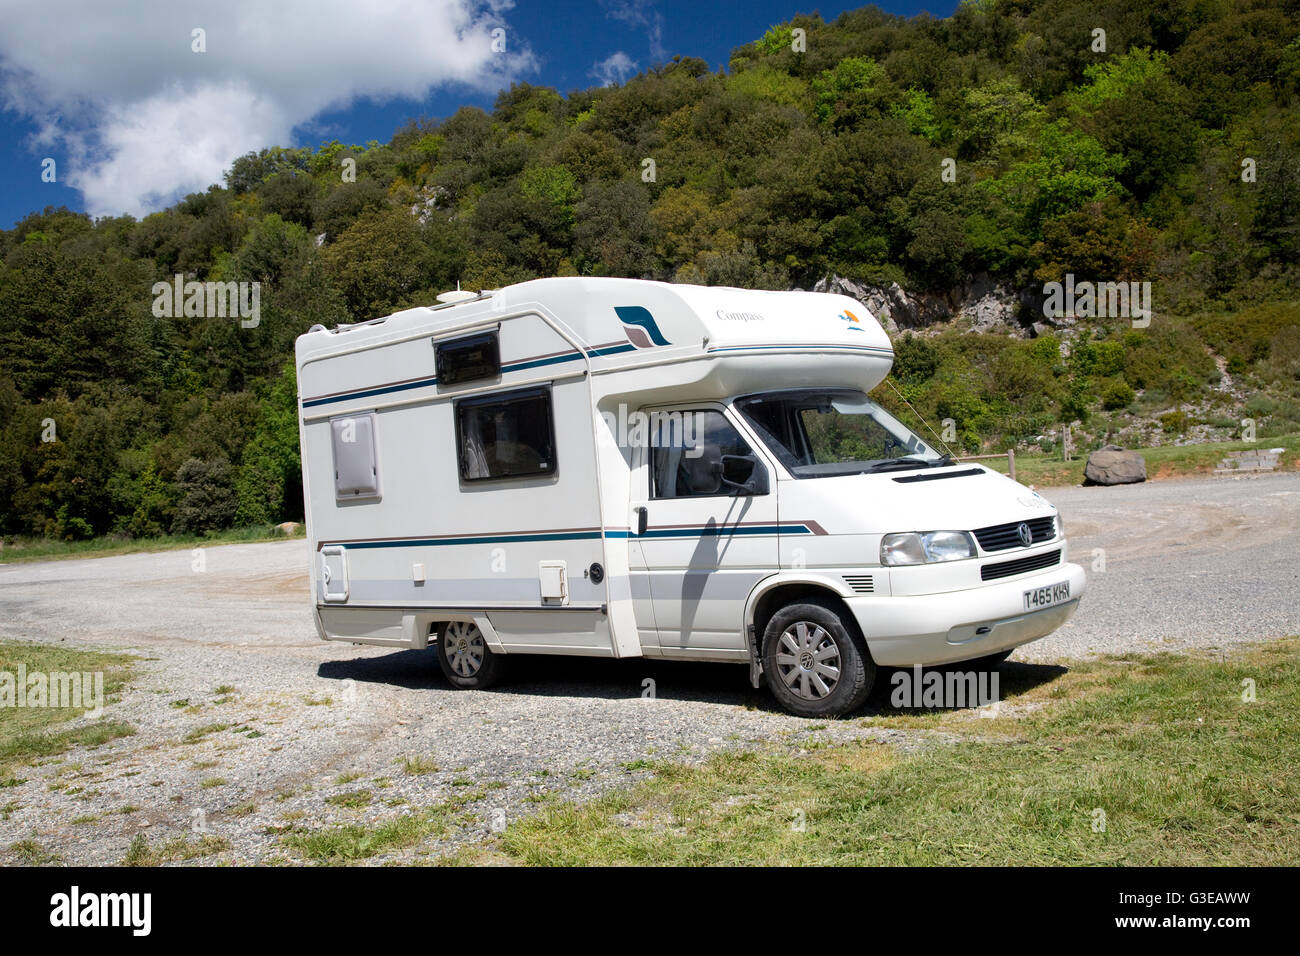 Compass Calypso campervan parked in forested rest area near Ginoles Pyrenees France - Stock Image